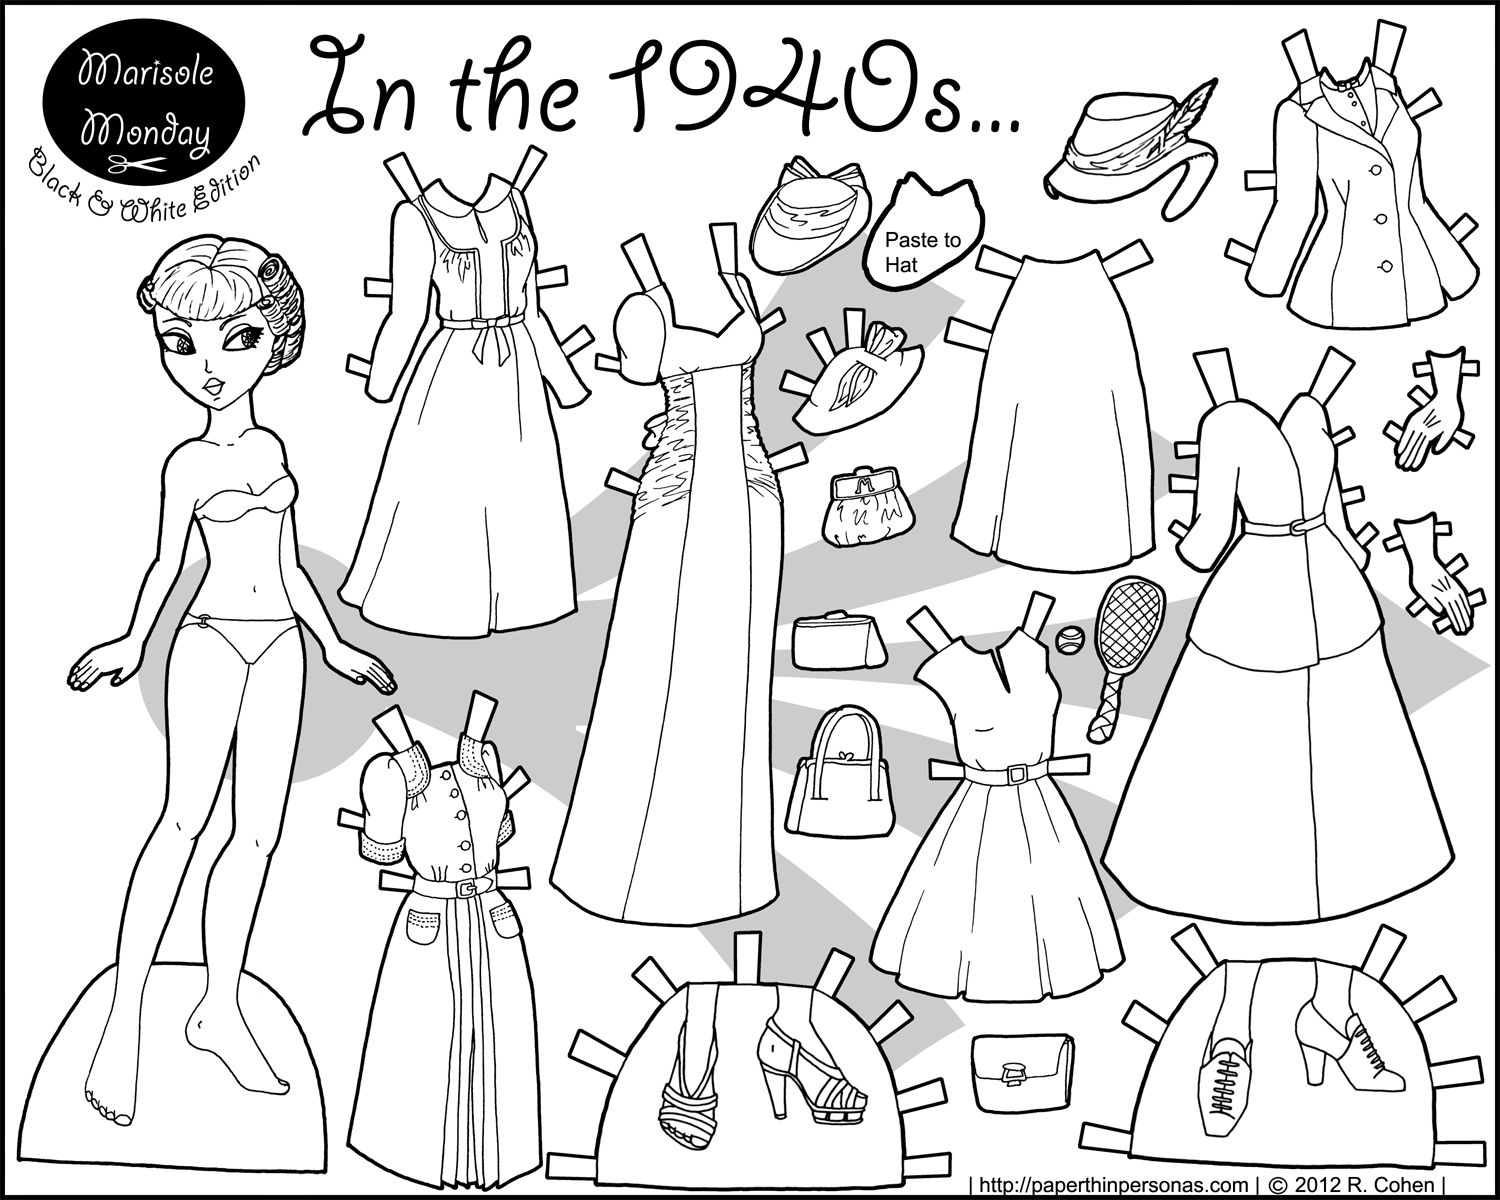 In The 1940S Paper Doll Coloring Page | Paper Doll 7 | Pinterest - Free Printable Paper Dolls Black And White